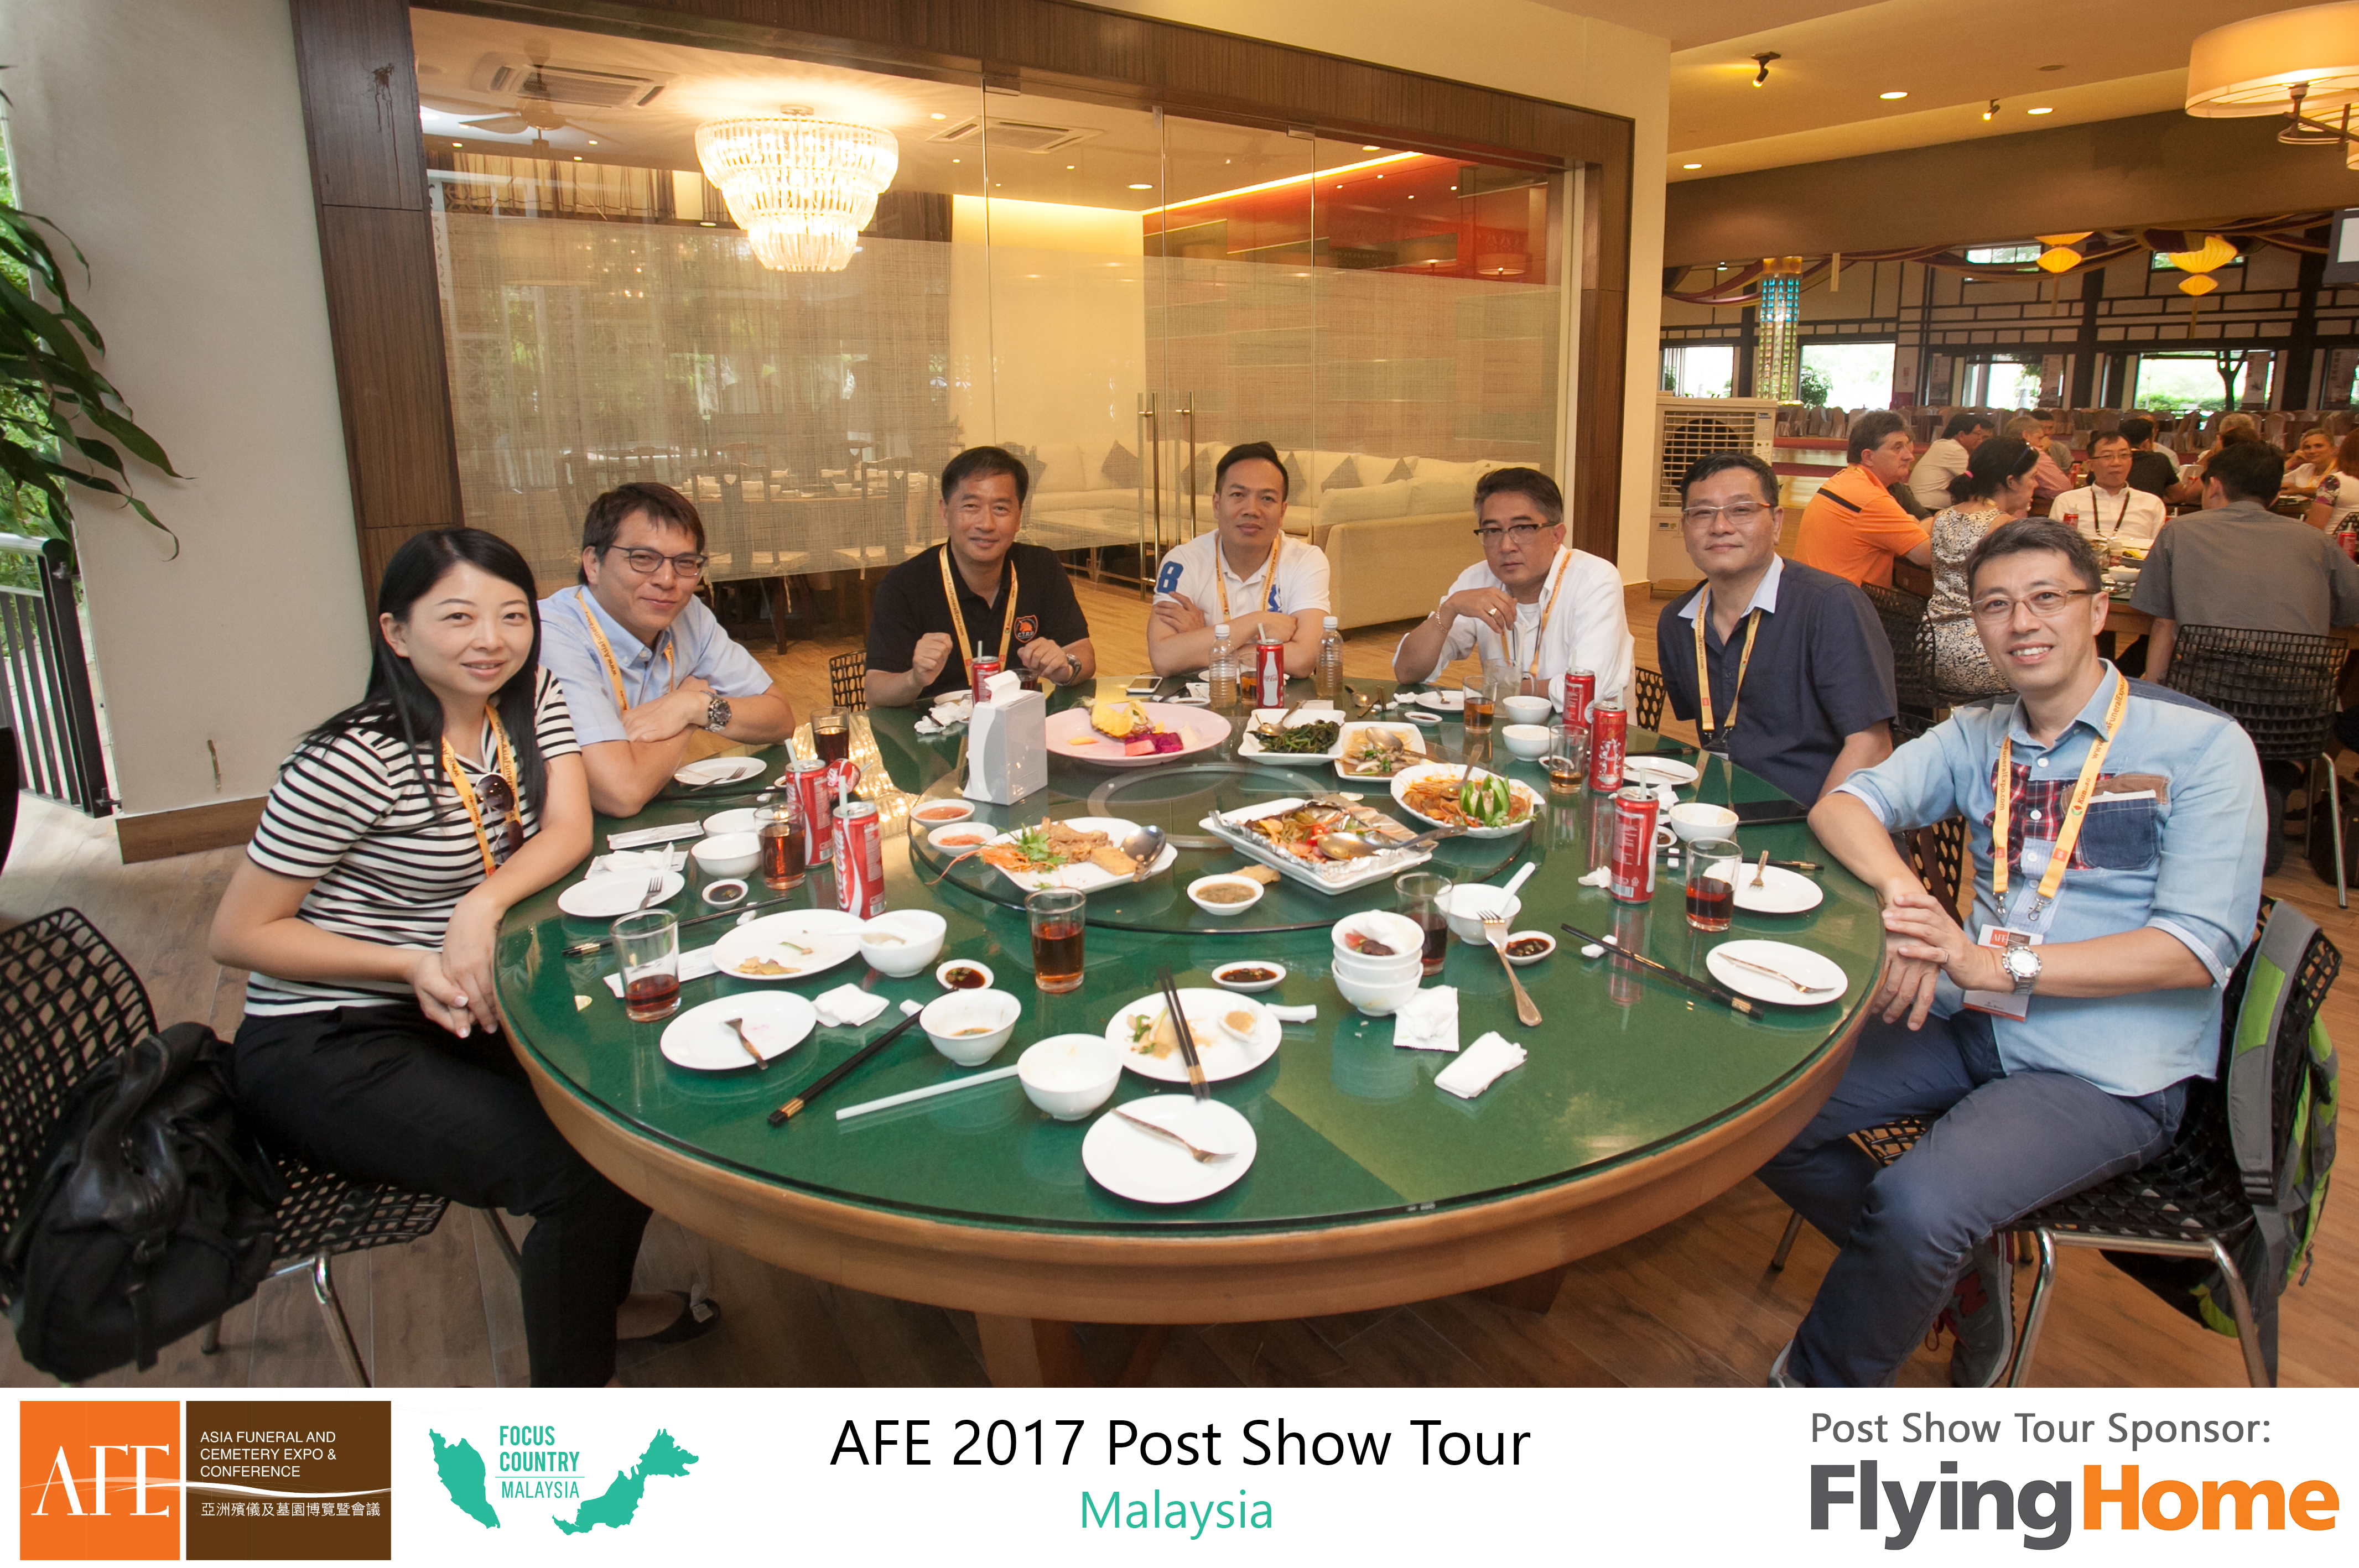 AFE Post Show Tour 2017 Day 2 - 15